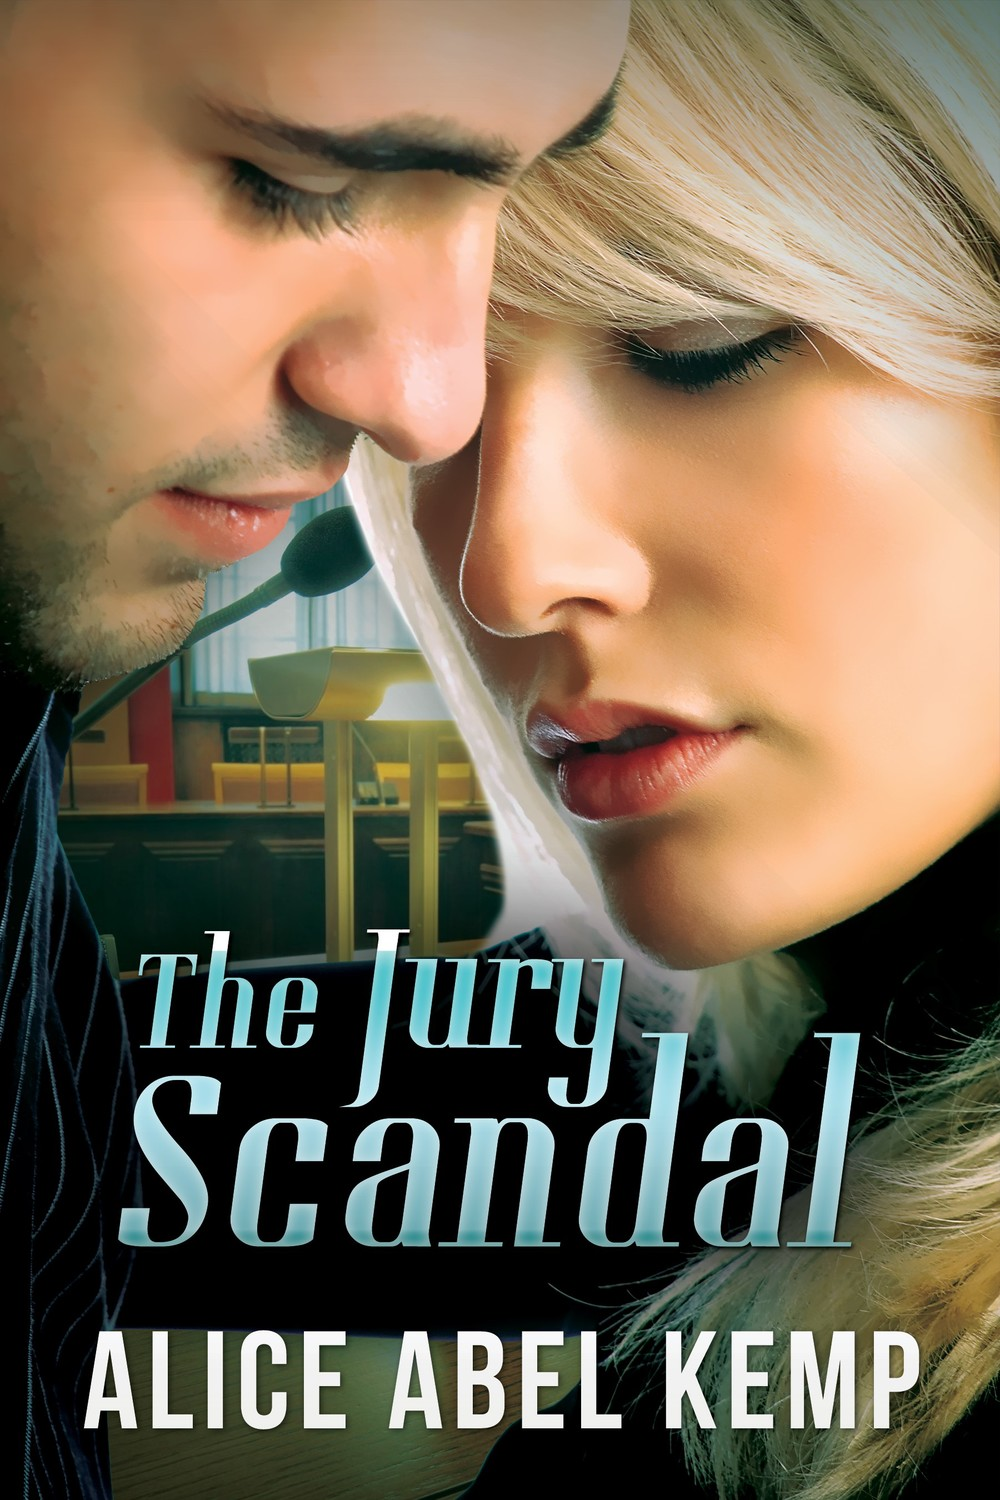 The Jury Scandal by Alice Abel Kemp